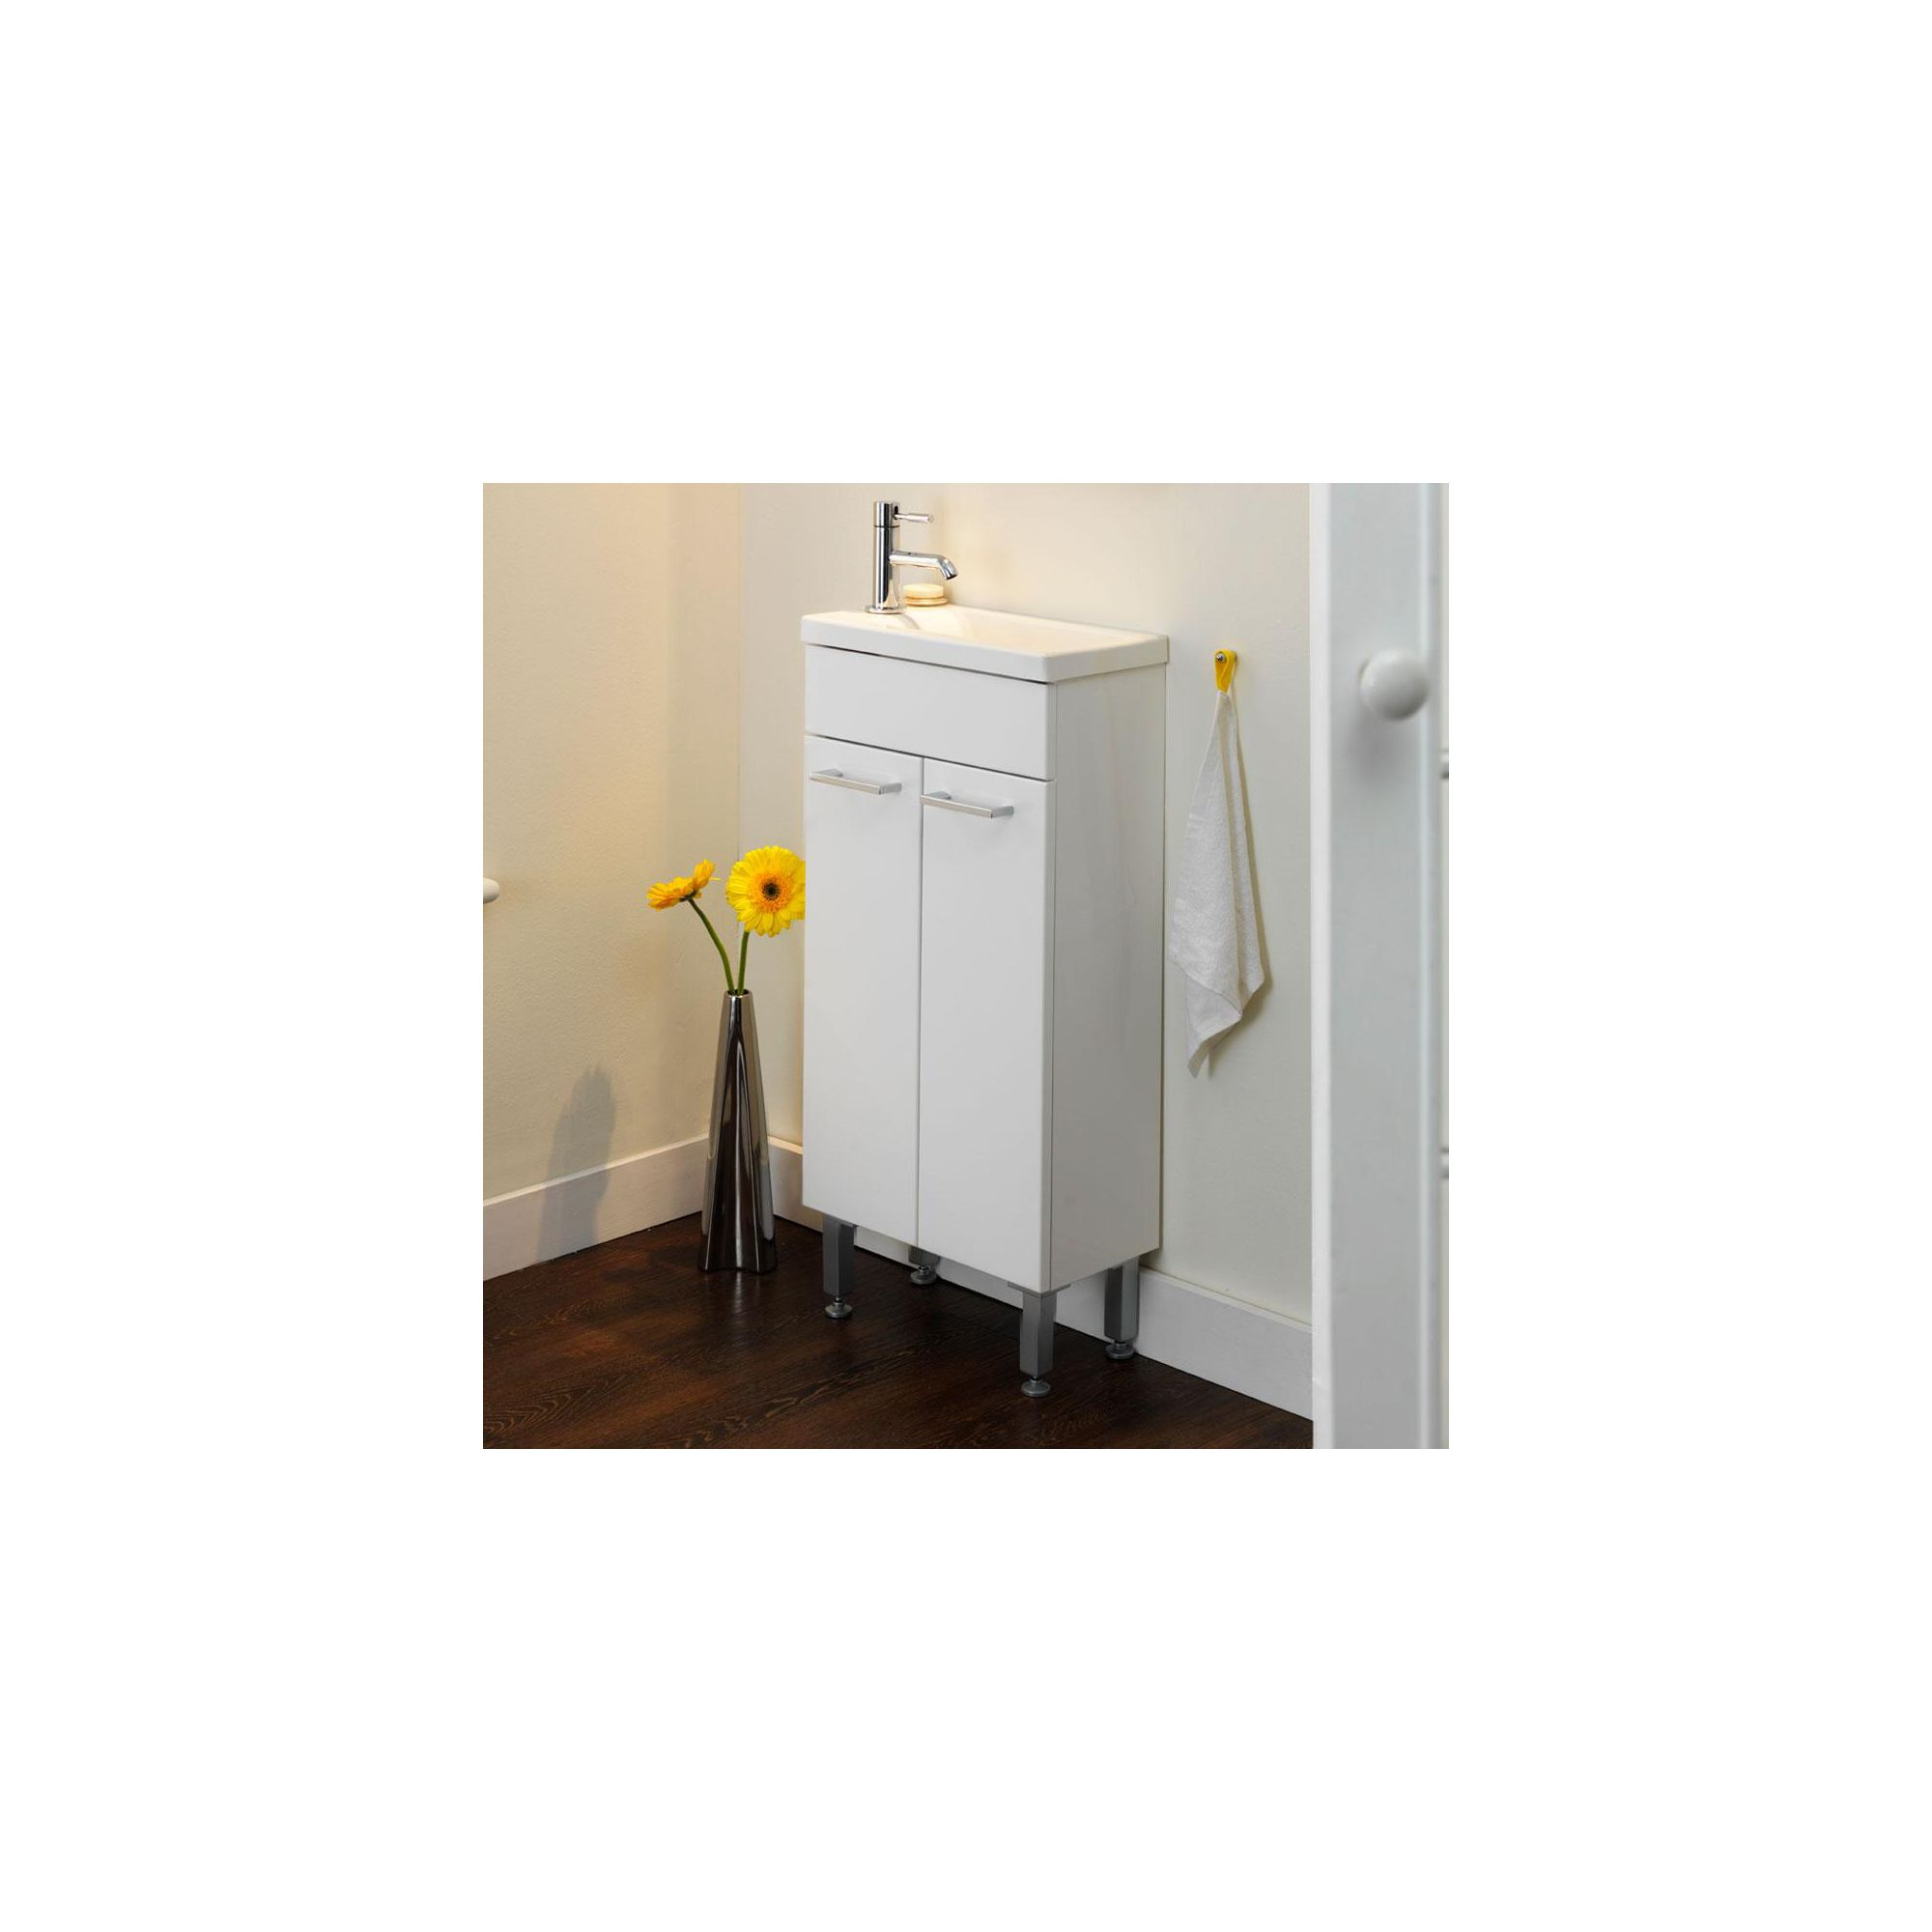 Duchy Trevail White Floor Standing 2 Door Vanity Unit and Basin - 390mm Wide x 425mm Deep